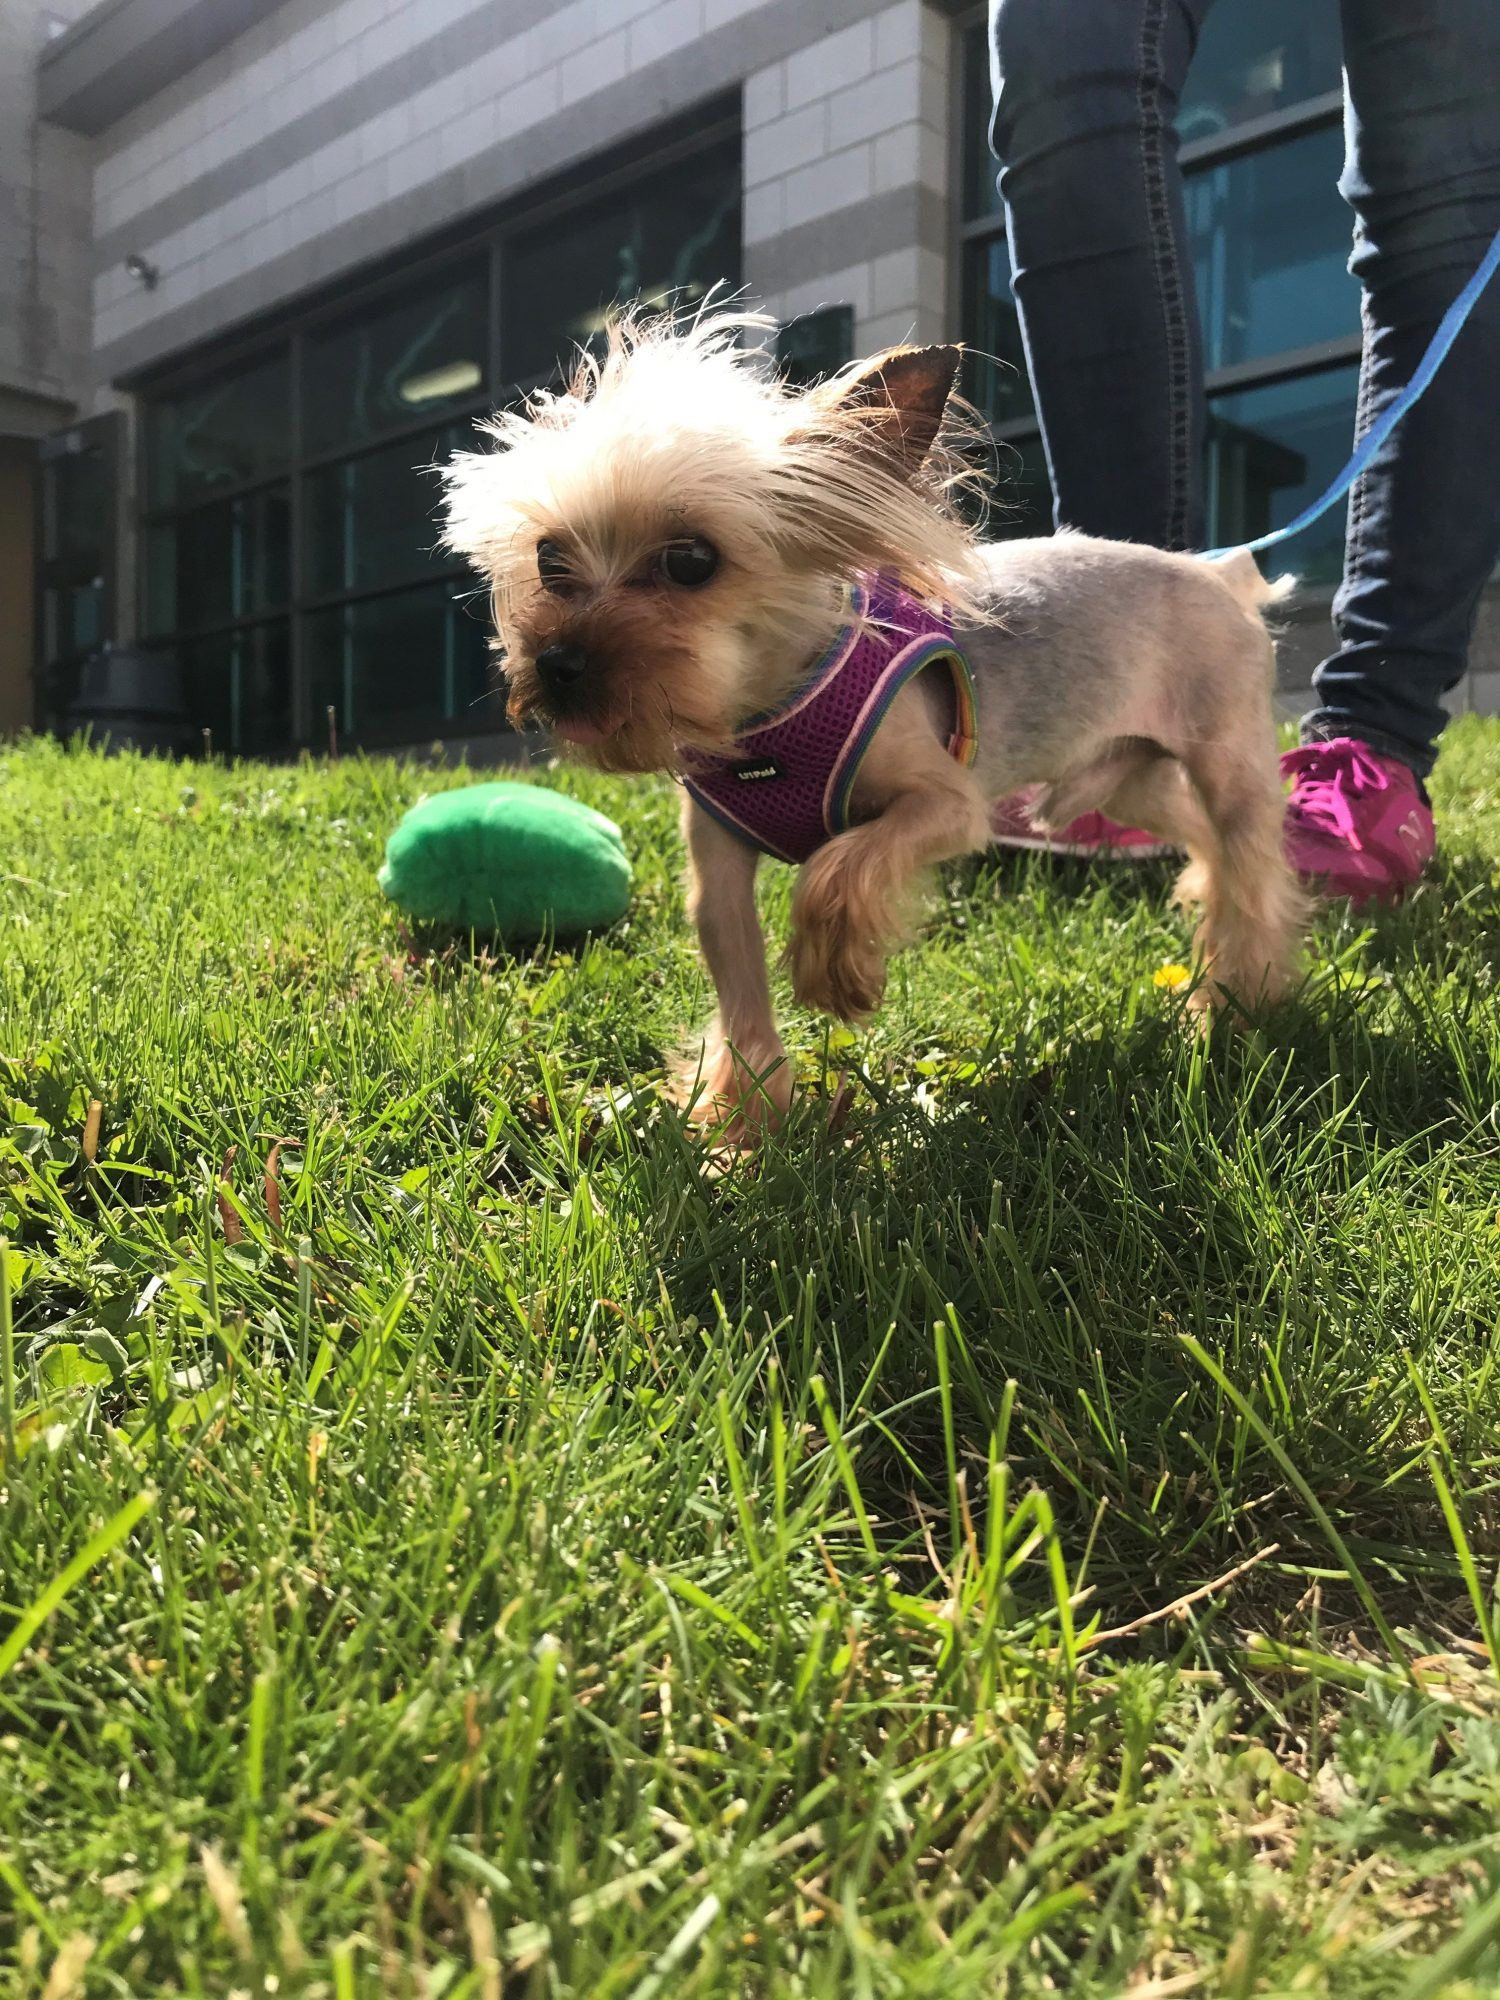 After - Tiny Oscar enjoys some sun and fun outdoors at the MSPCA in Boston (credit MSPCA-Angell)